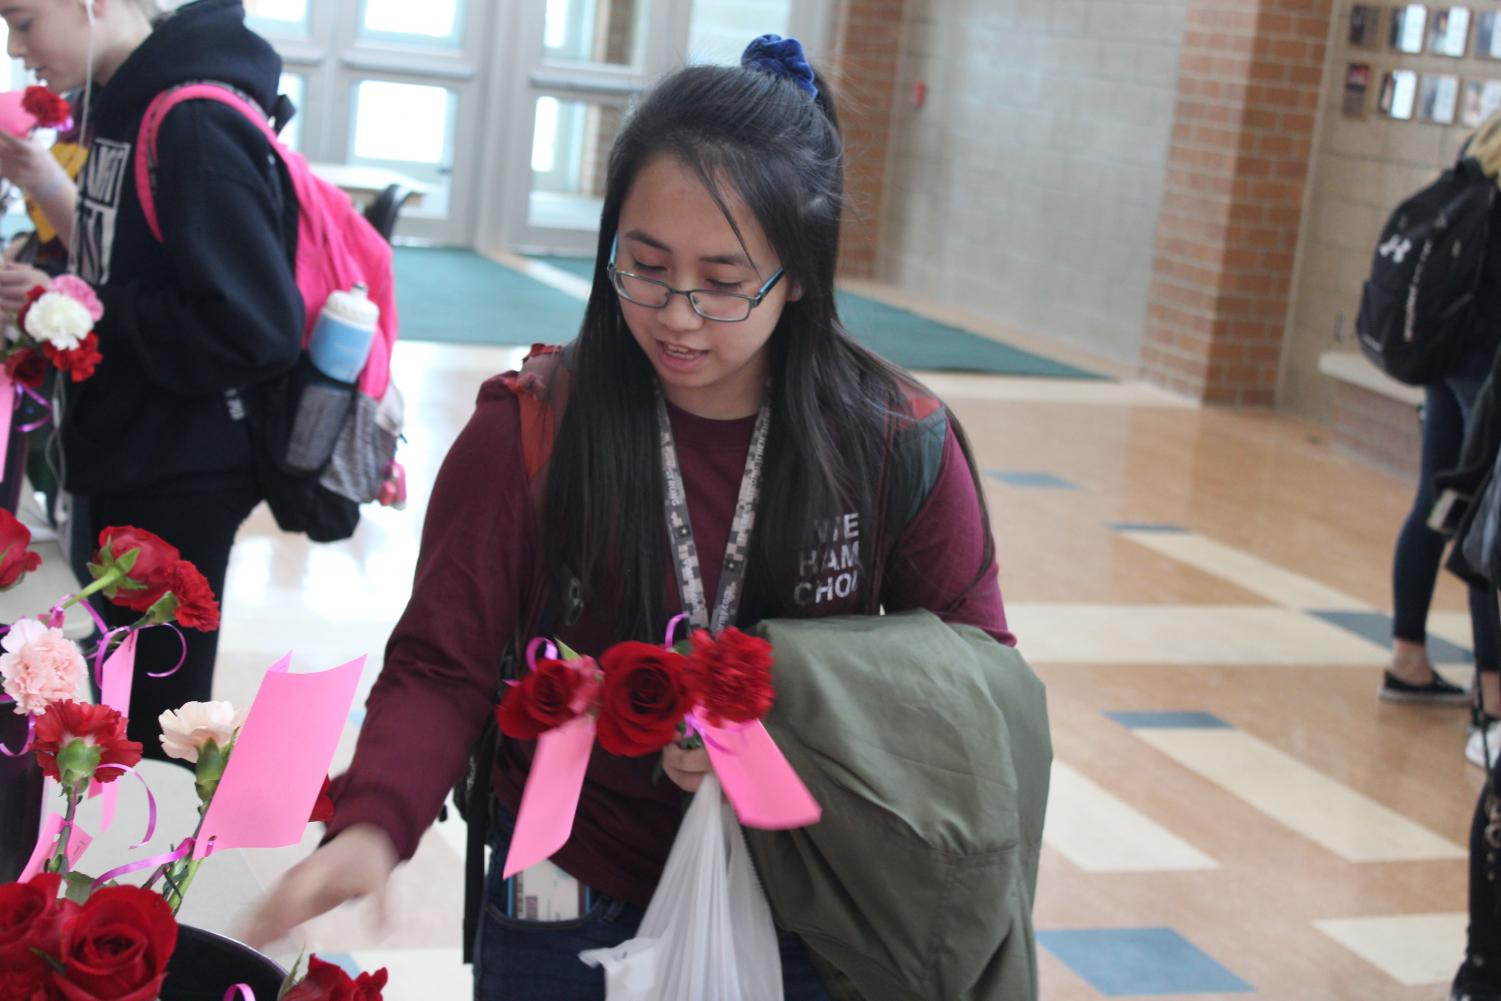 Senior Kim Cao picks up her flower order. Students can place orders for flowers until Wednesday the 13th from tables set up in the commons.